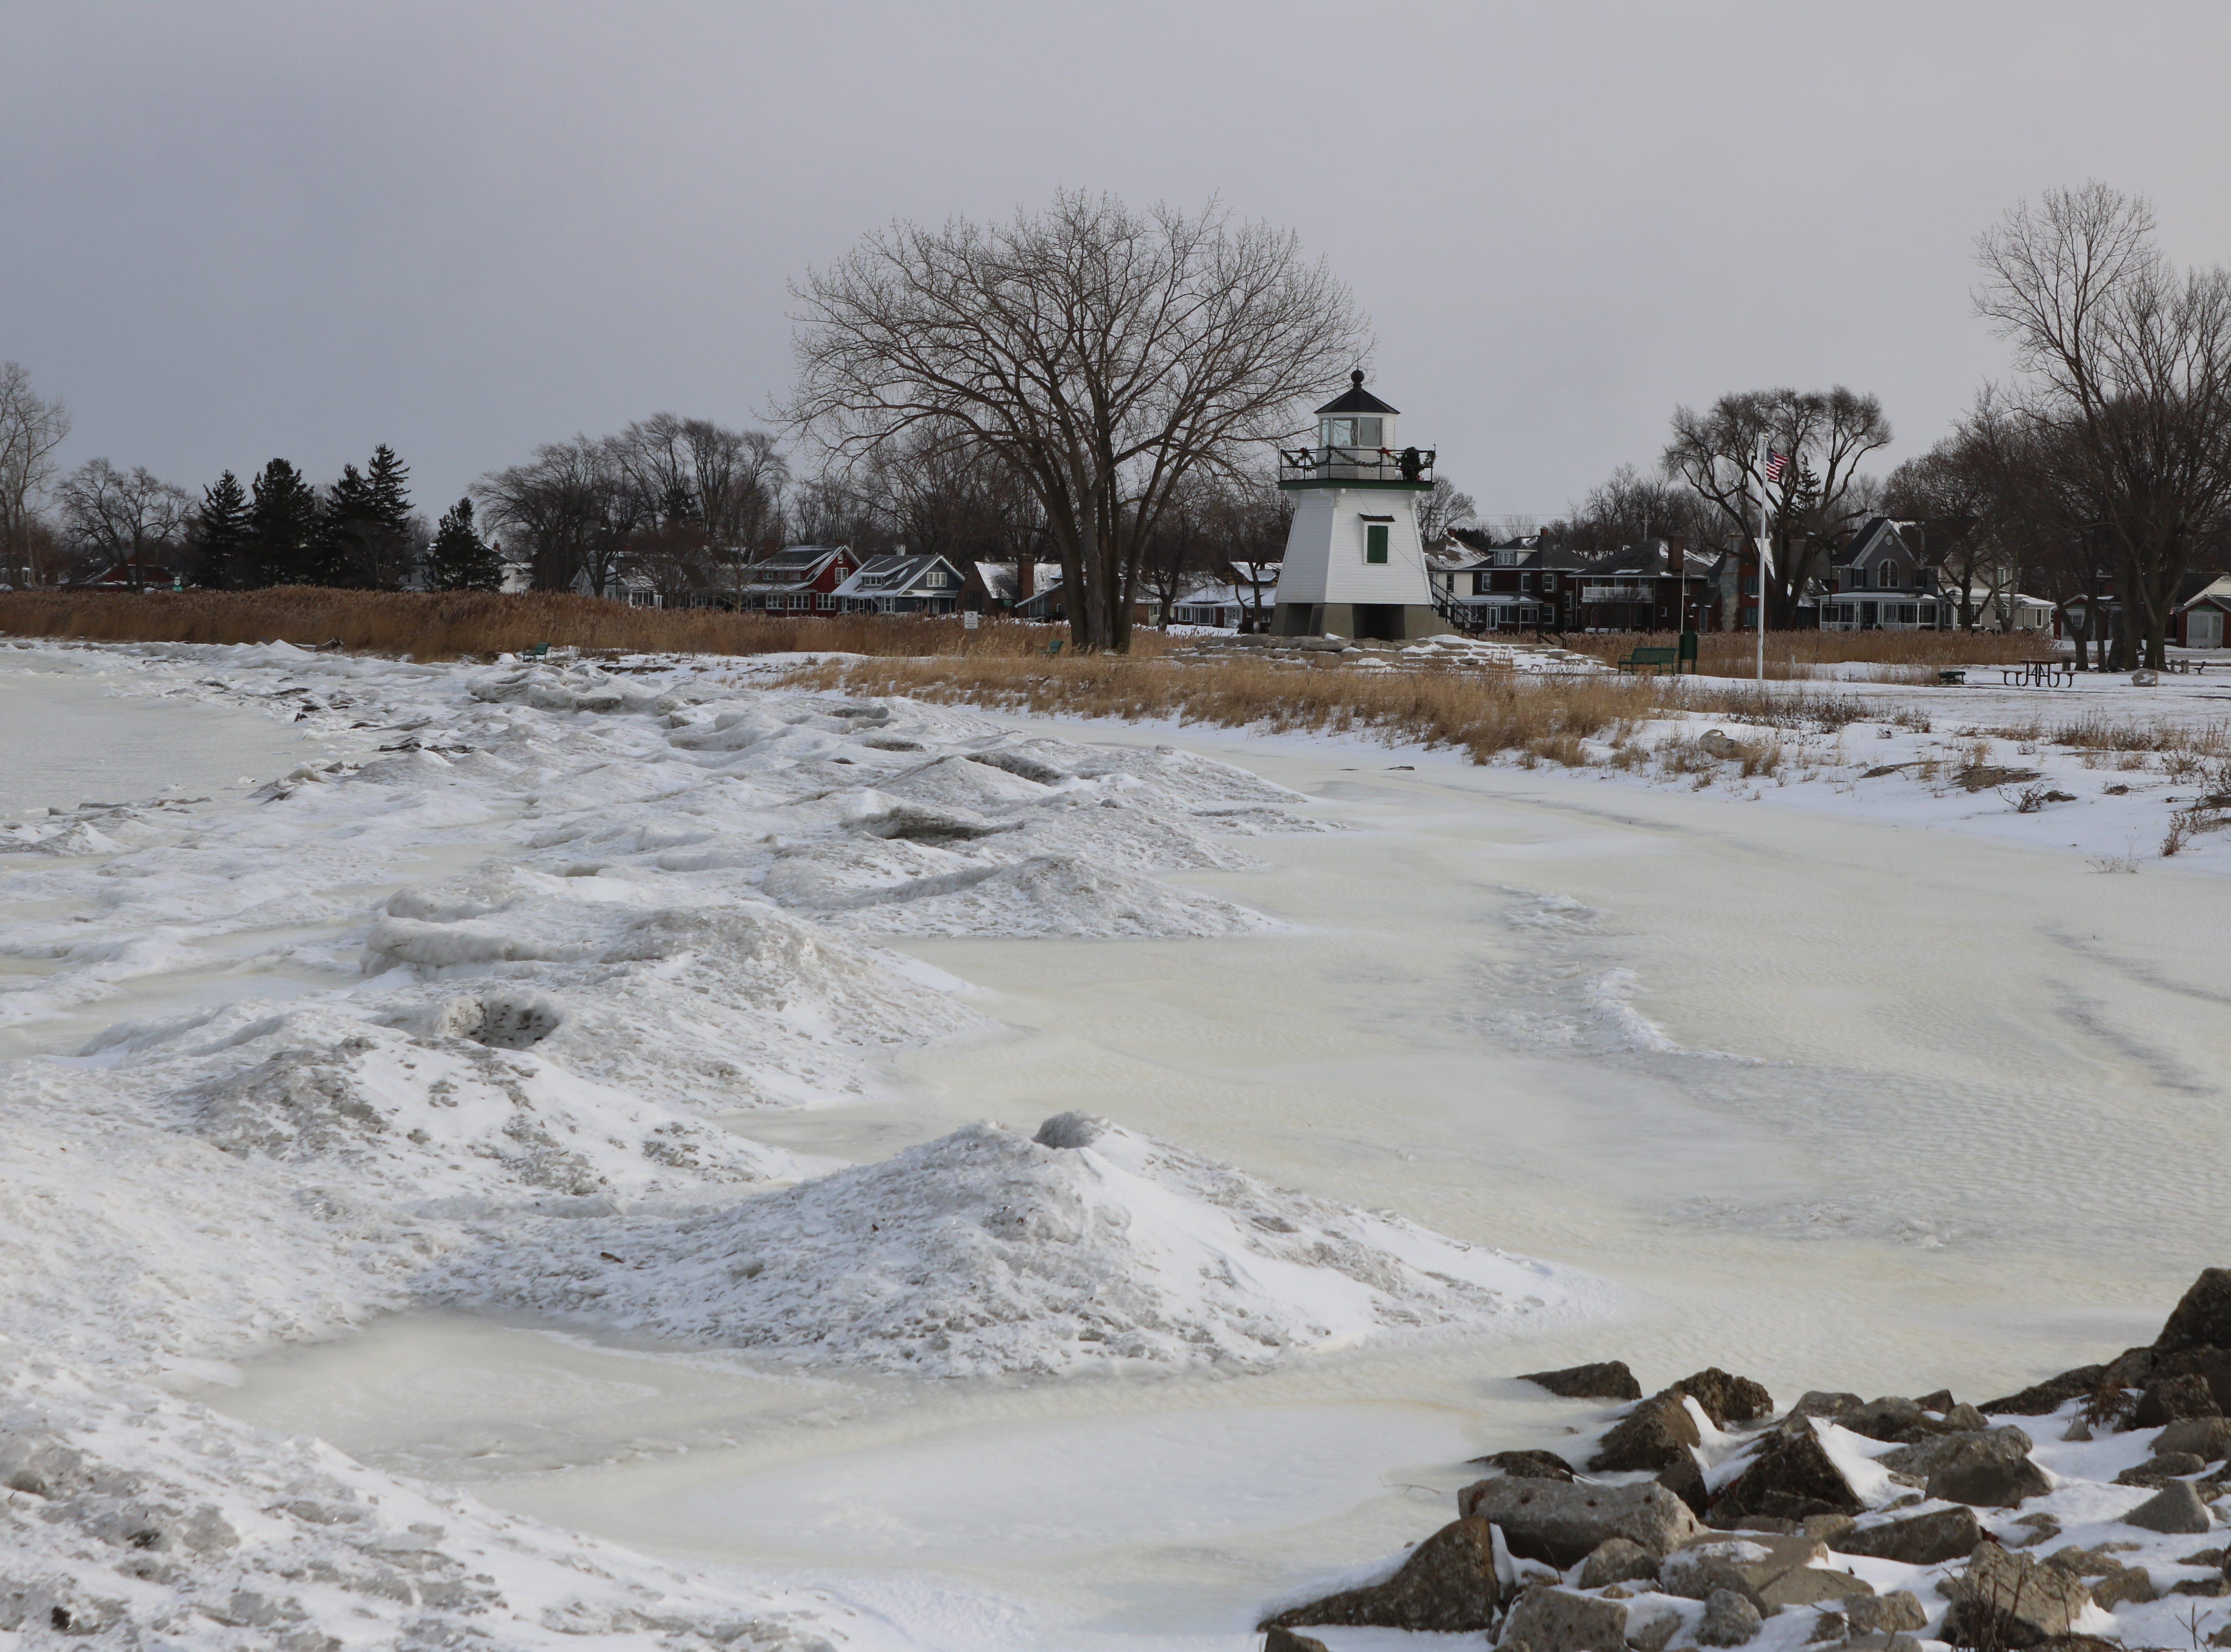 Colder temperatures following Winter Storm Harper had much of Lake Erie's surface frozen on Sunday.